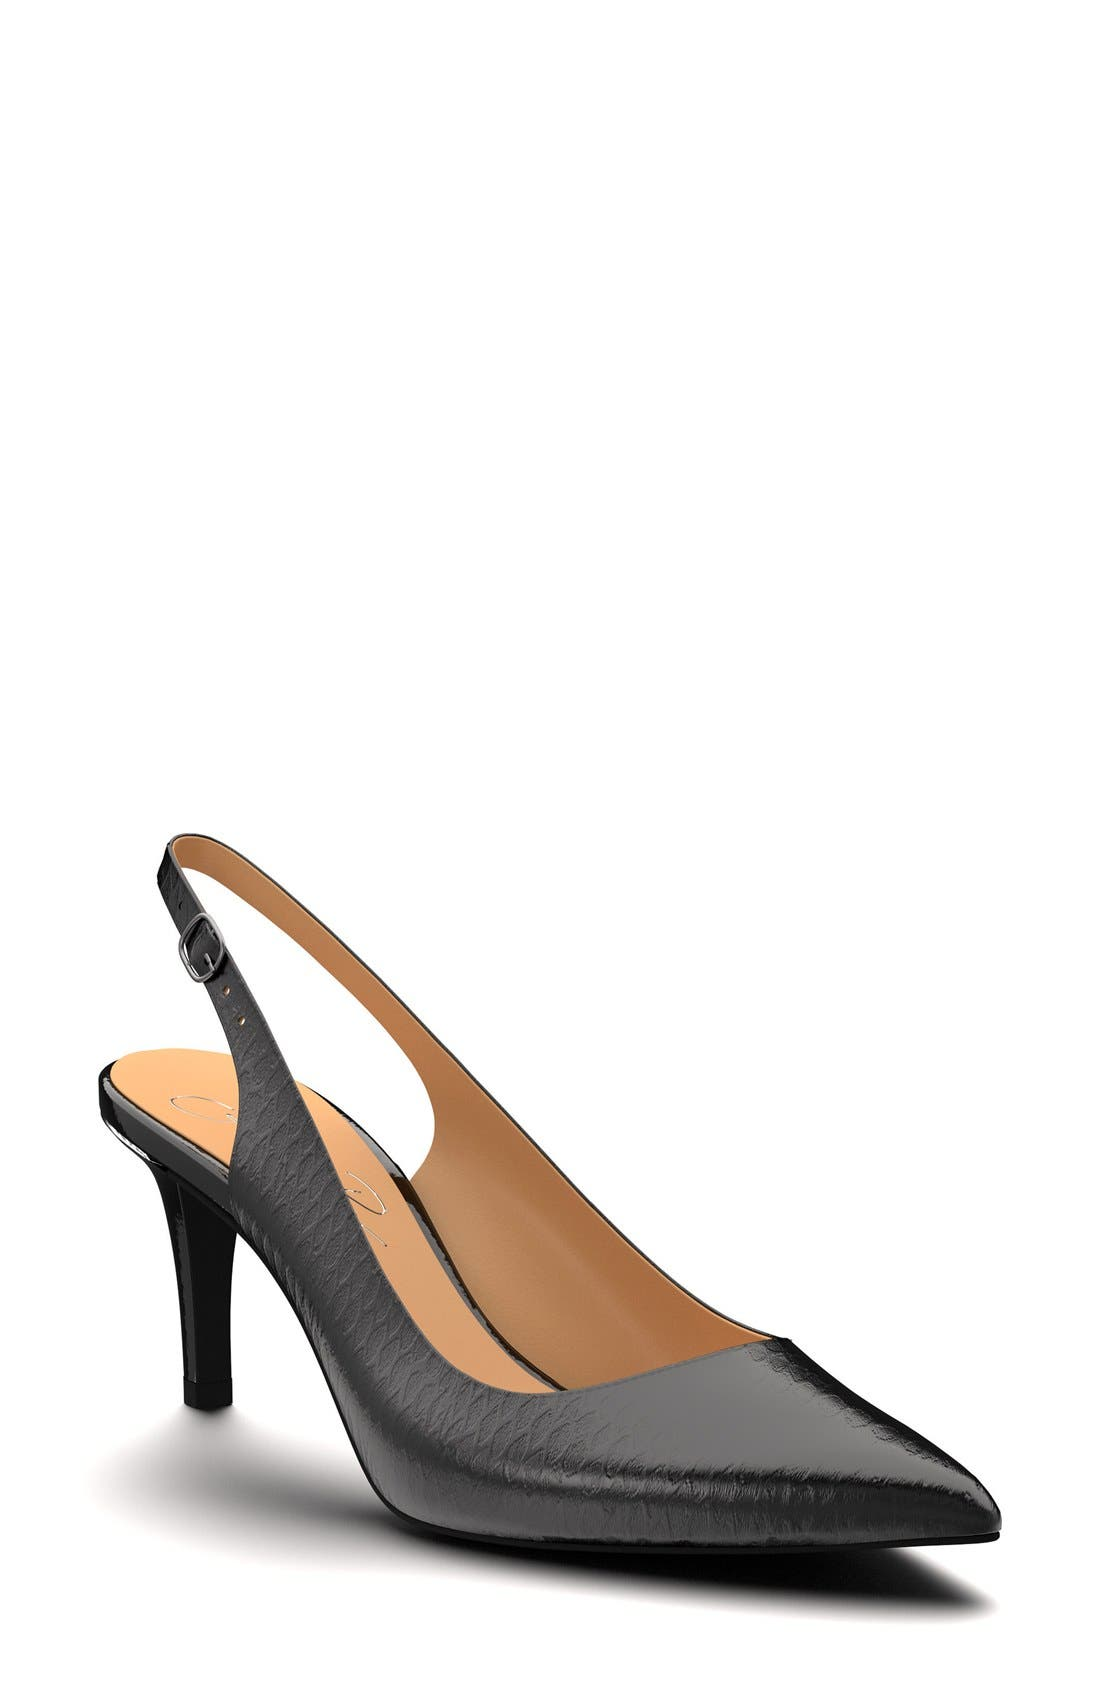 Alternate Image 1 Selected - Shoes of Prey Slingback Pump (Women)